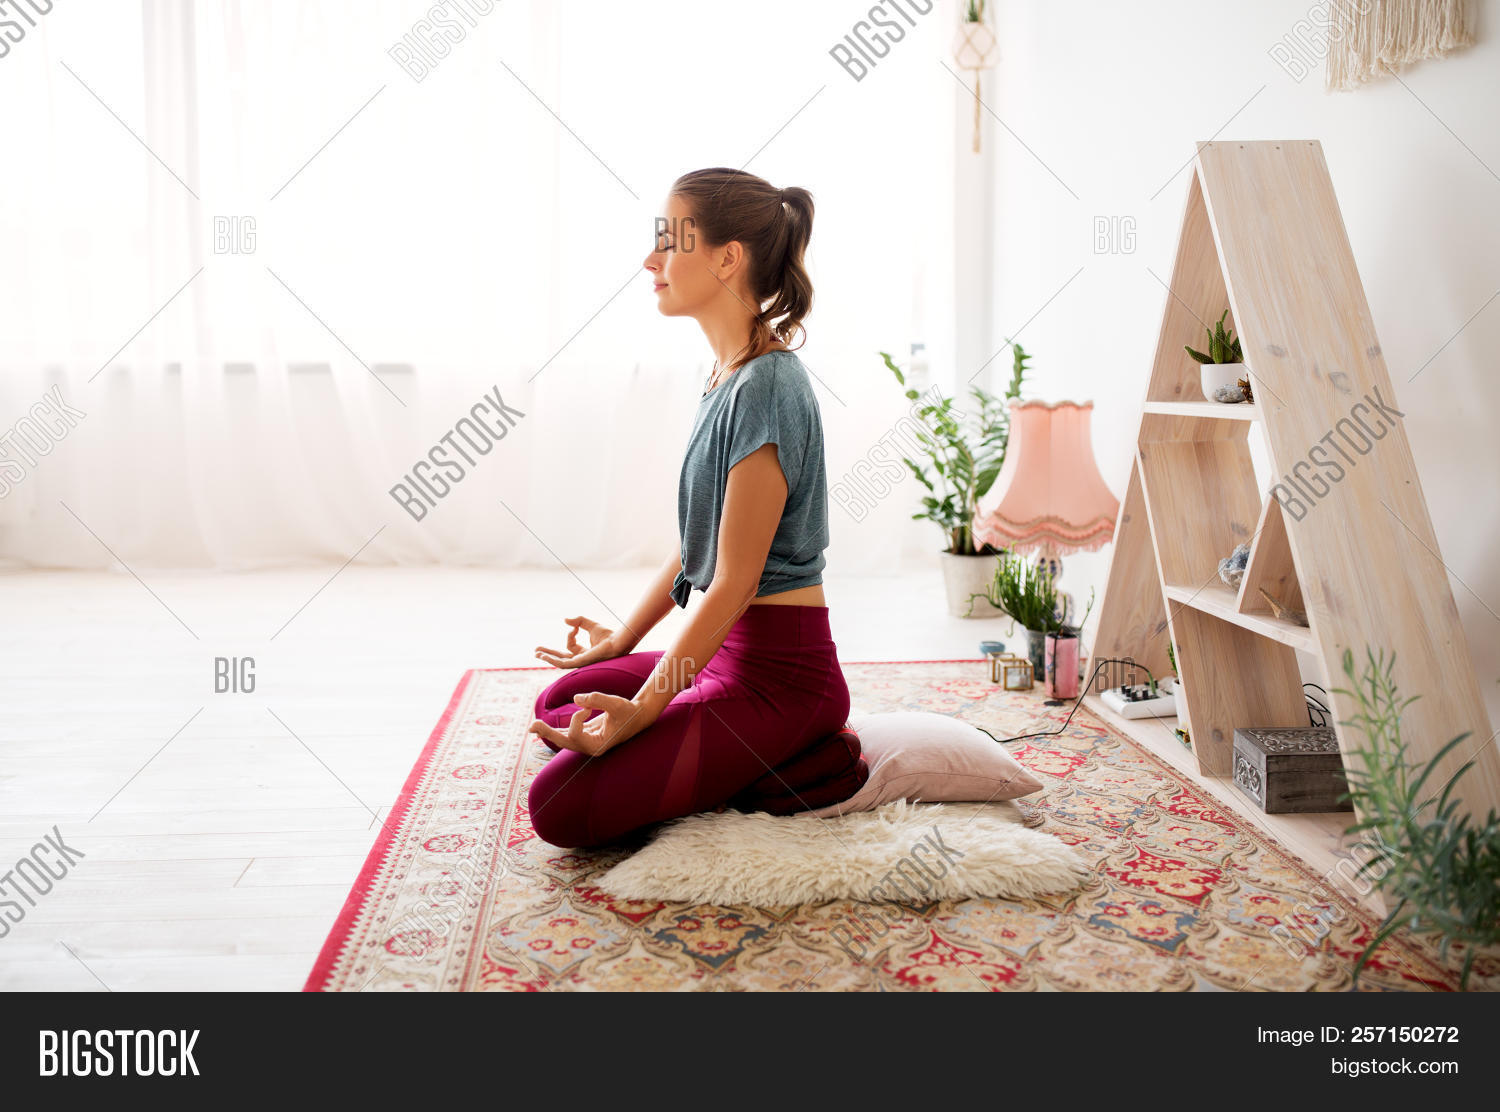 mindfulness, spirituality and healthy lifestyle concept - woman meditating in lotus pose at yoga stu